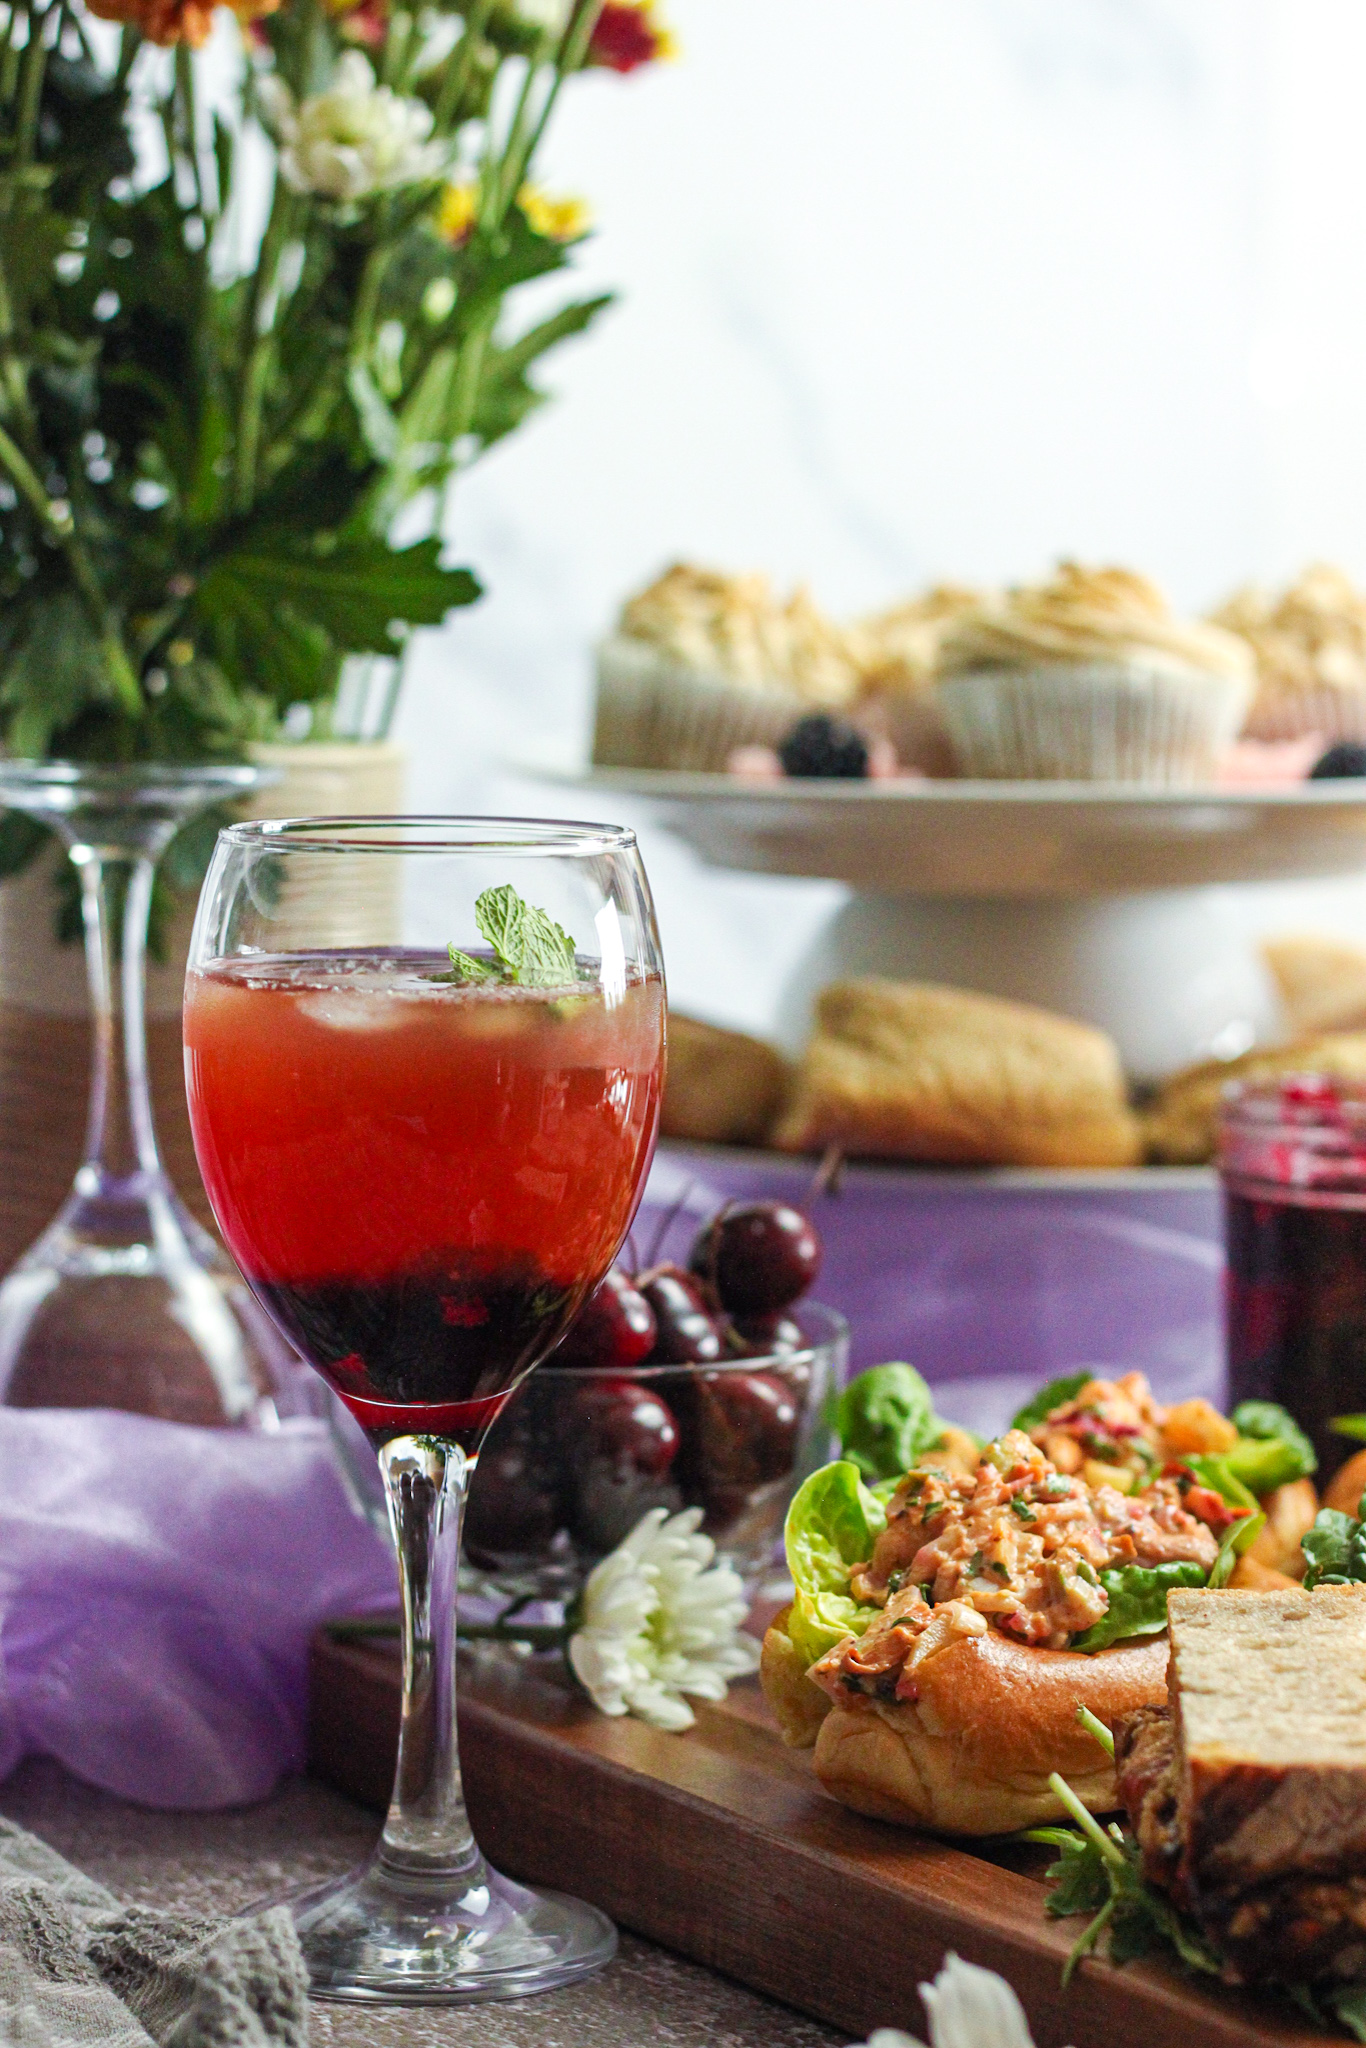 The Best Iced Tea for Fall: Blackberry, Sage & Mint